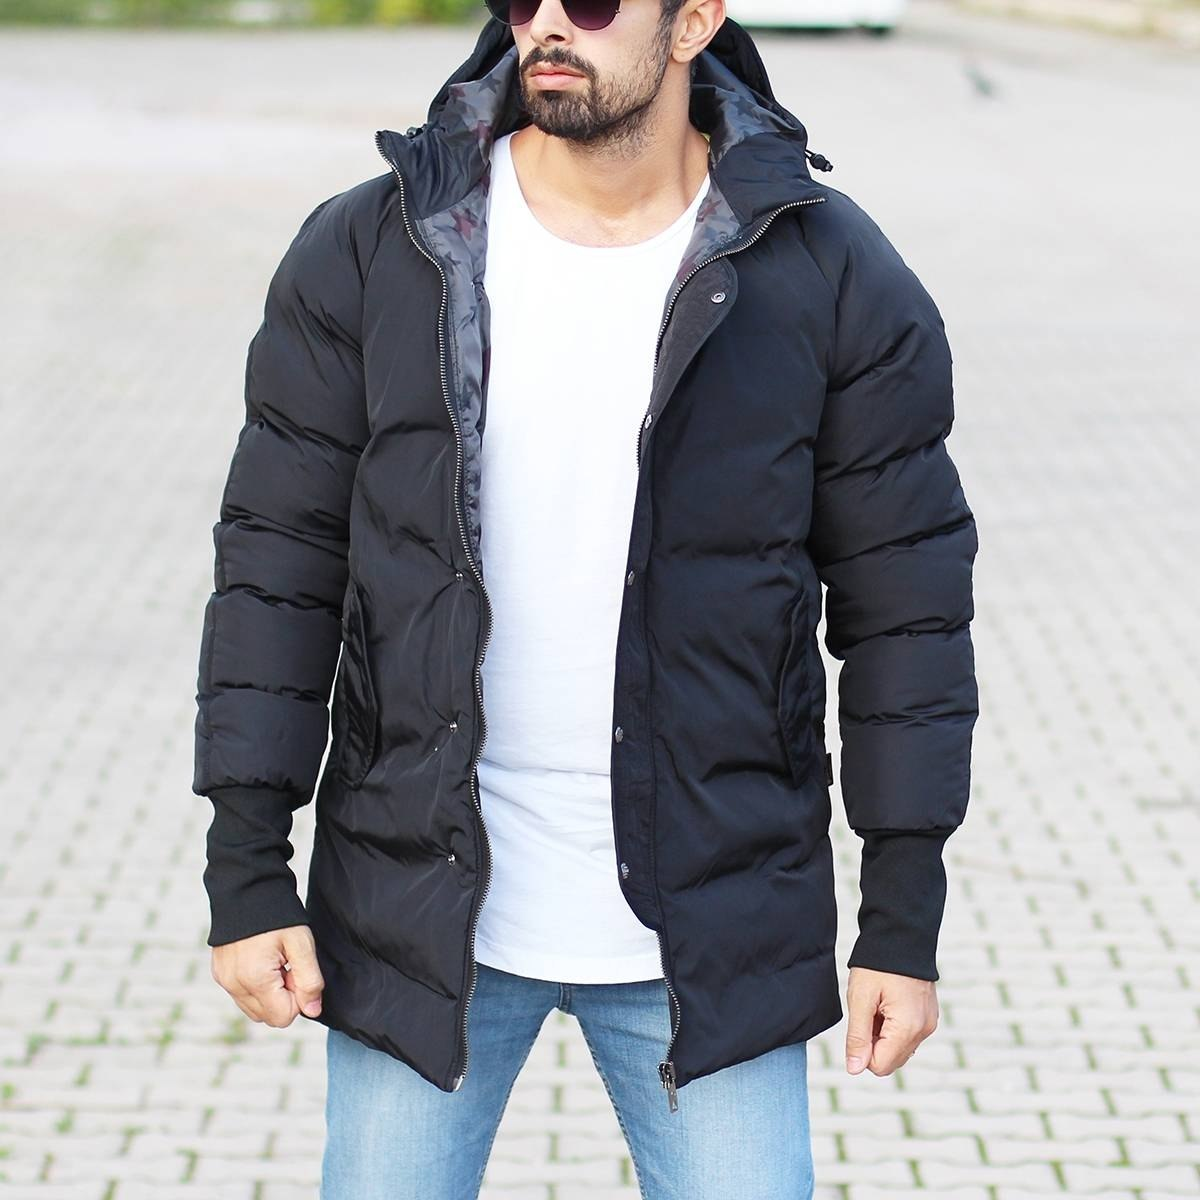 Men's Hooded Puffer Winter Coat In Black Mv Premium Brand - 1